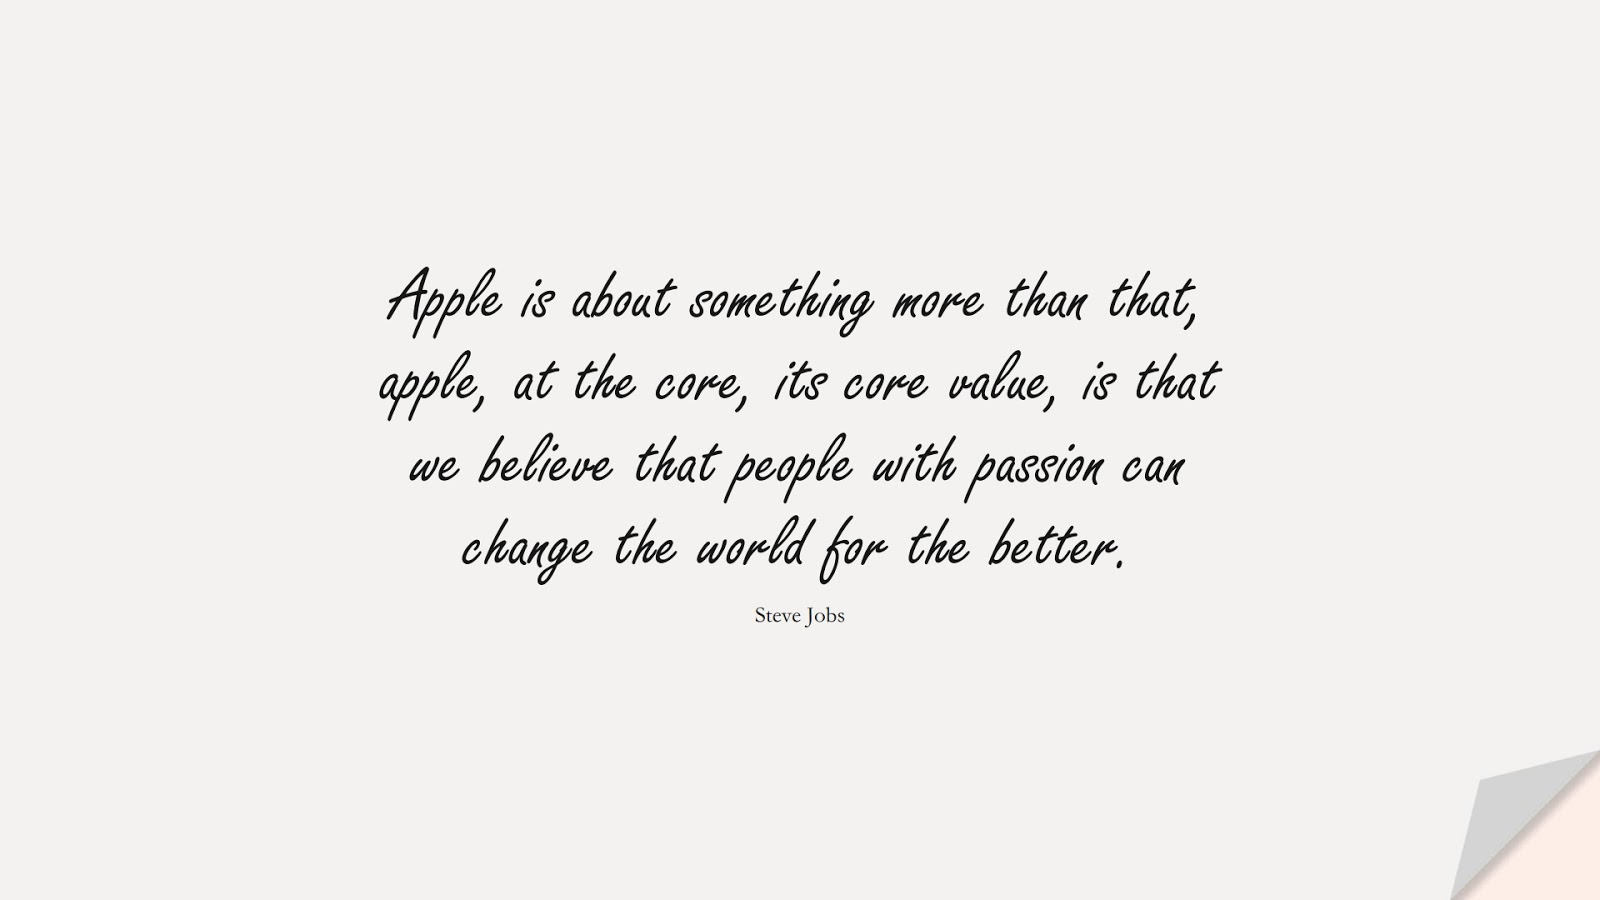 Apple is about something more than that, apple, at the core, its core value, is that we believe that people with passion can change the world for the better. (Steve Jobs);  #SteveJobsQuotes